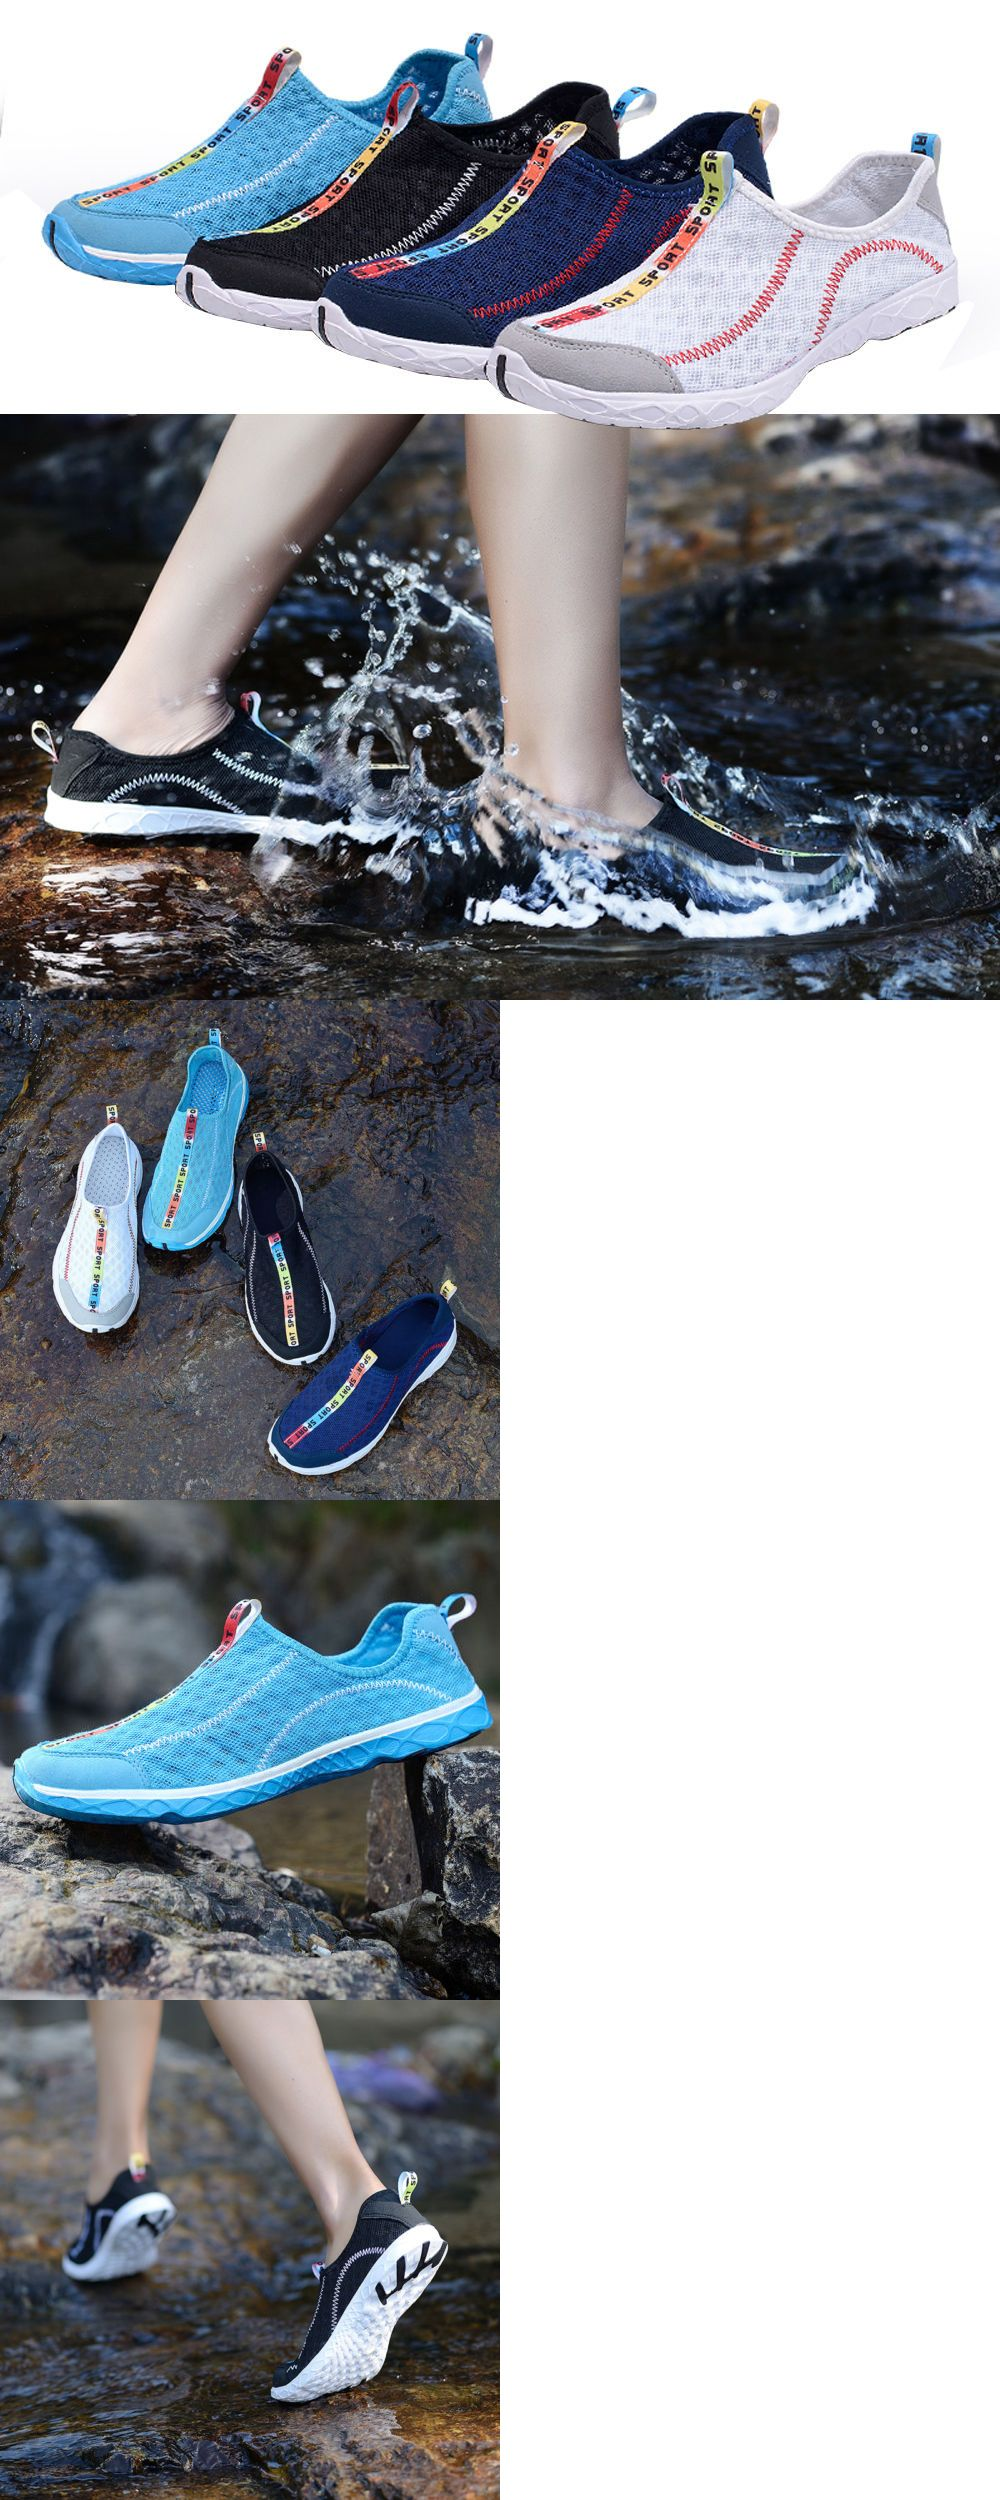 c58cd0d73 Fins Footwear and Gloves 159142  Men Water Shoes Sport Sneaker Lightweight  Breathable For Beach Trainer Outdoor -  BUY IT NOW ONLY   24.99 on eBay!